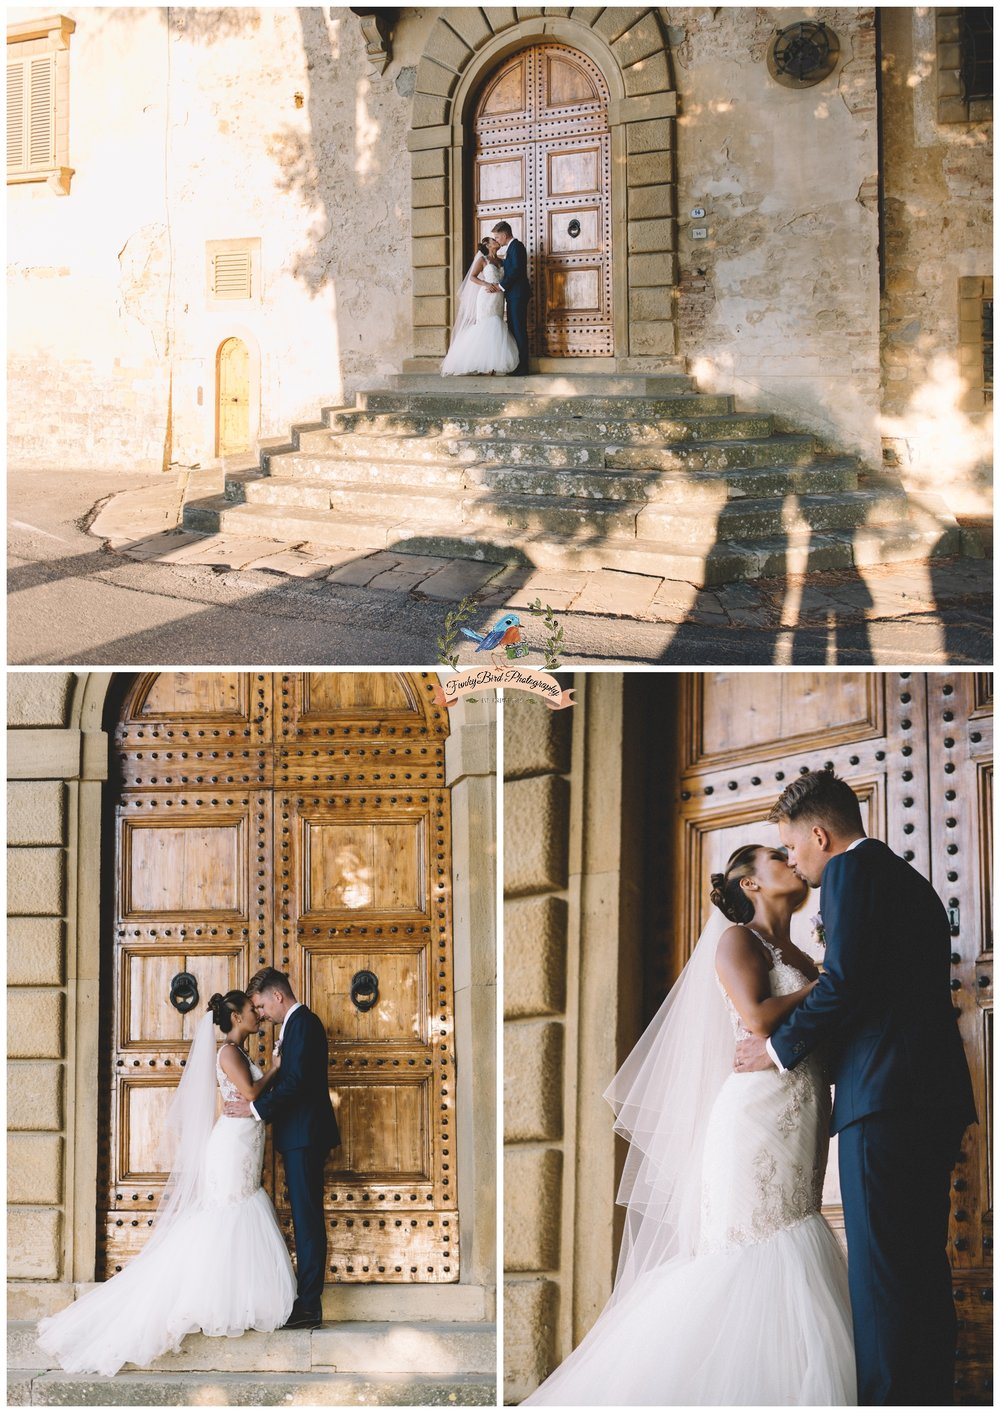 Wedding_Photographer_In_Tuscany_Italy_0025.jpg